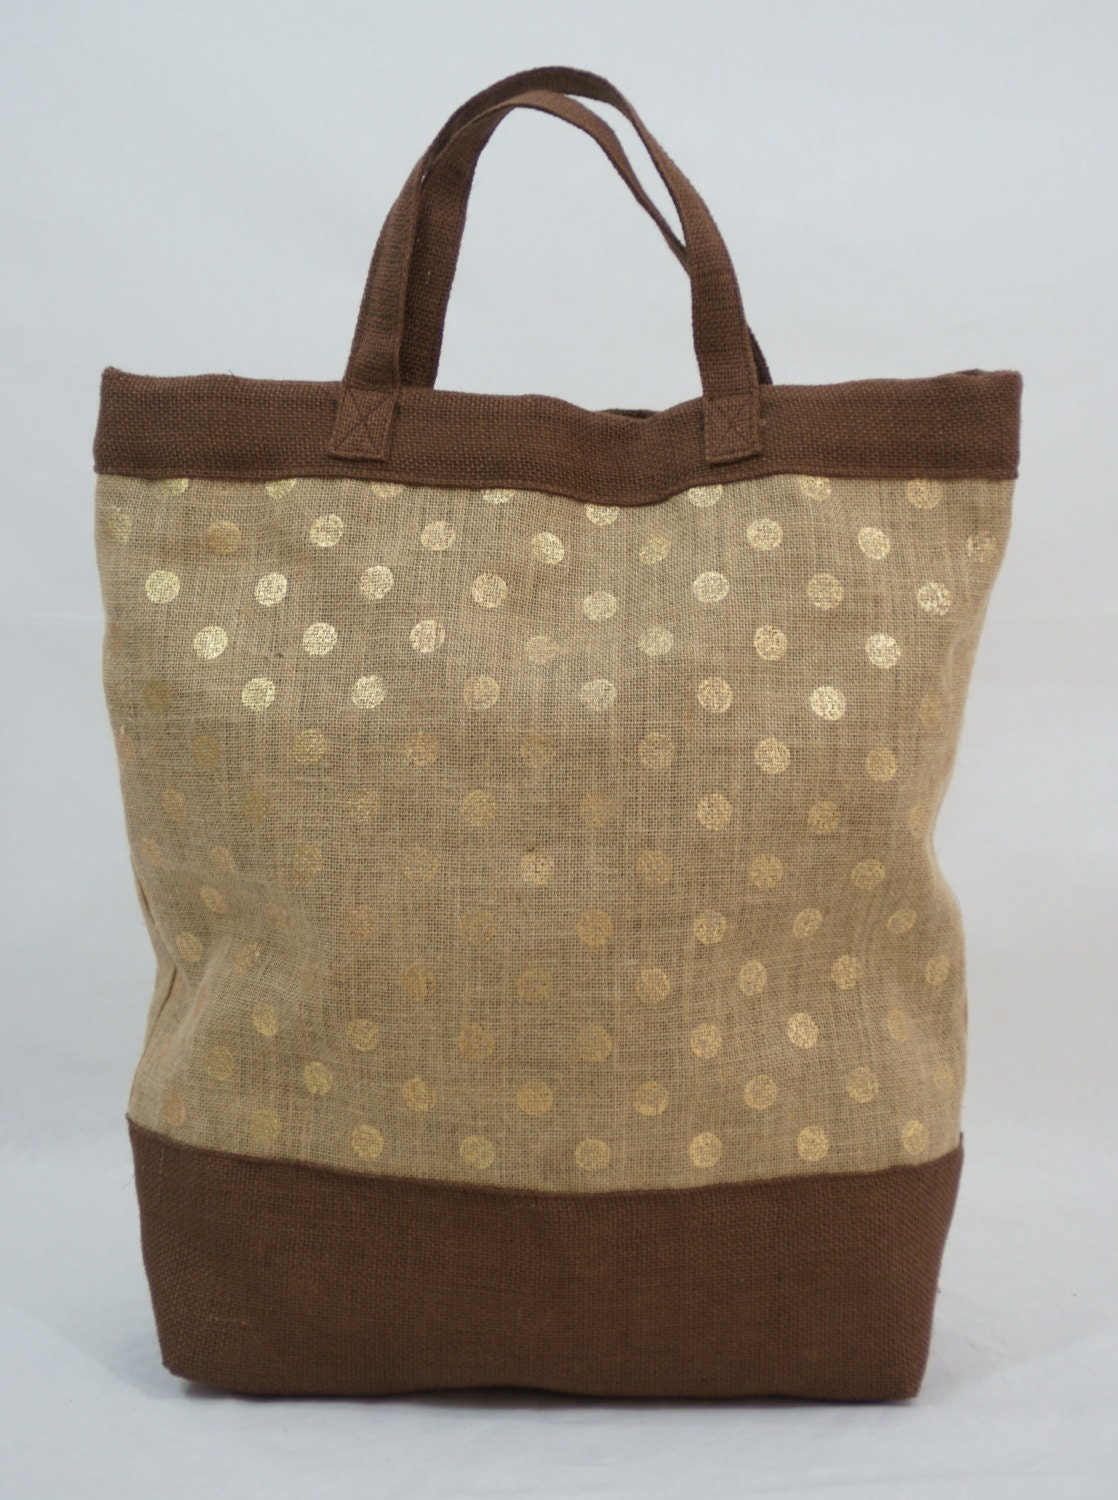 Extra Large/Over Sized Natural Jute Tote with Gold Polka Dot Print and Brown Jute Bottom